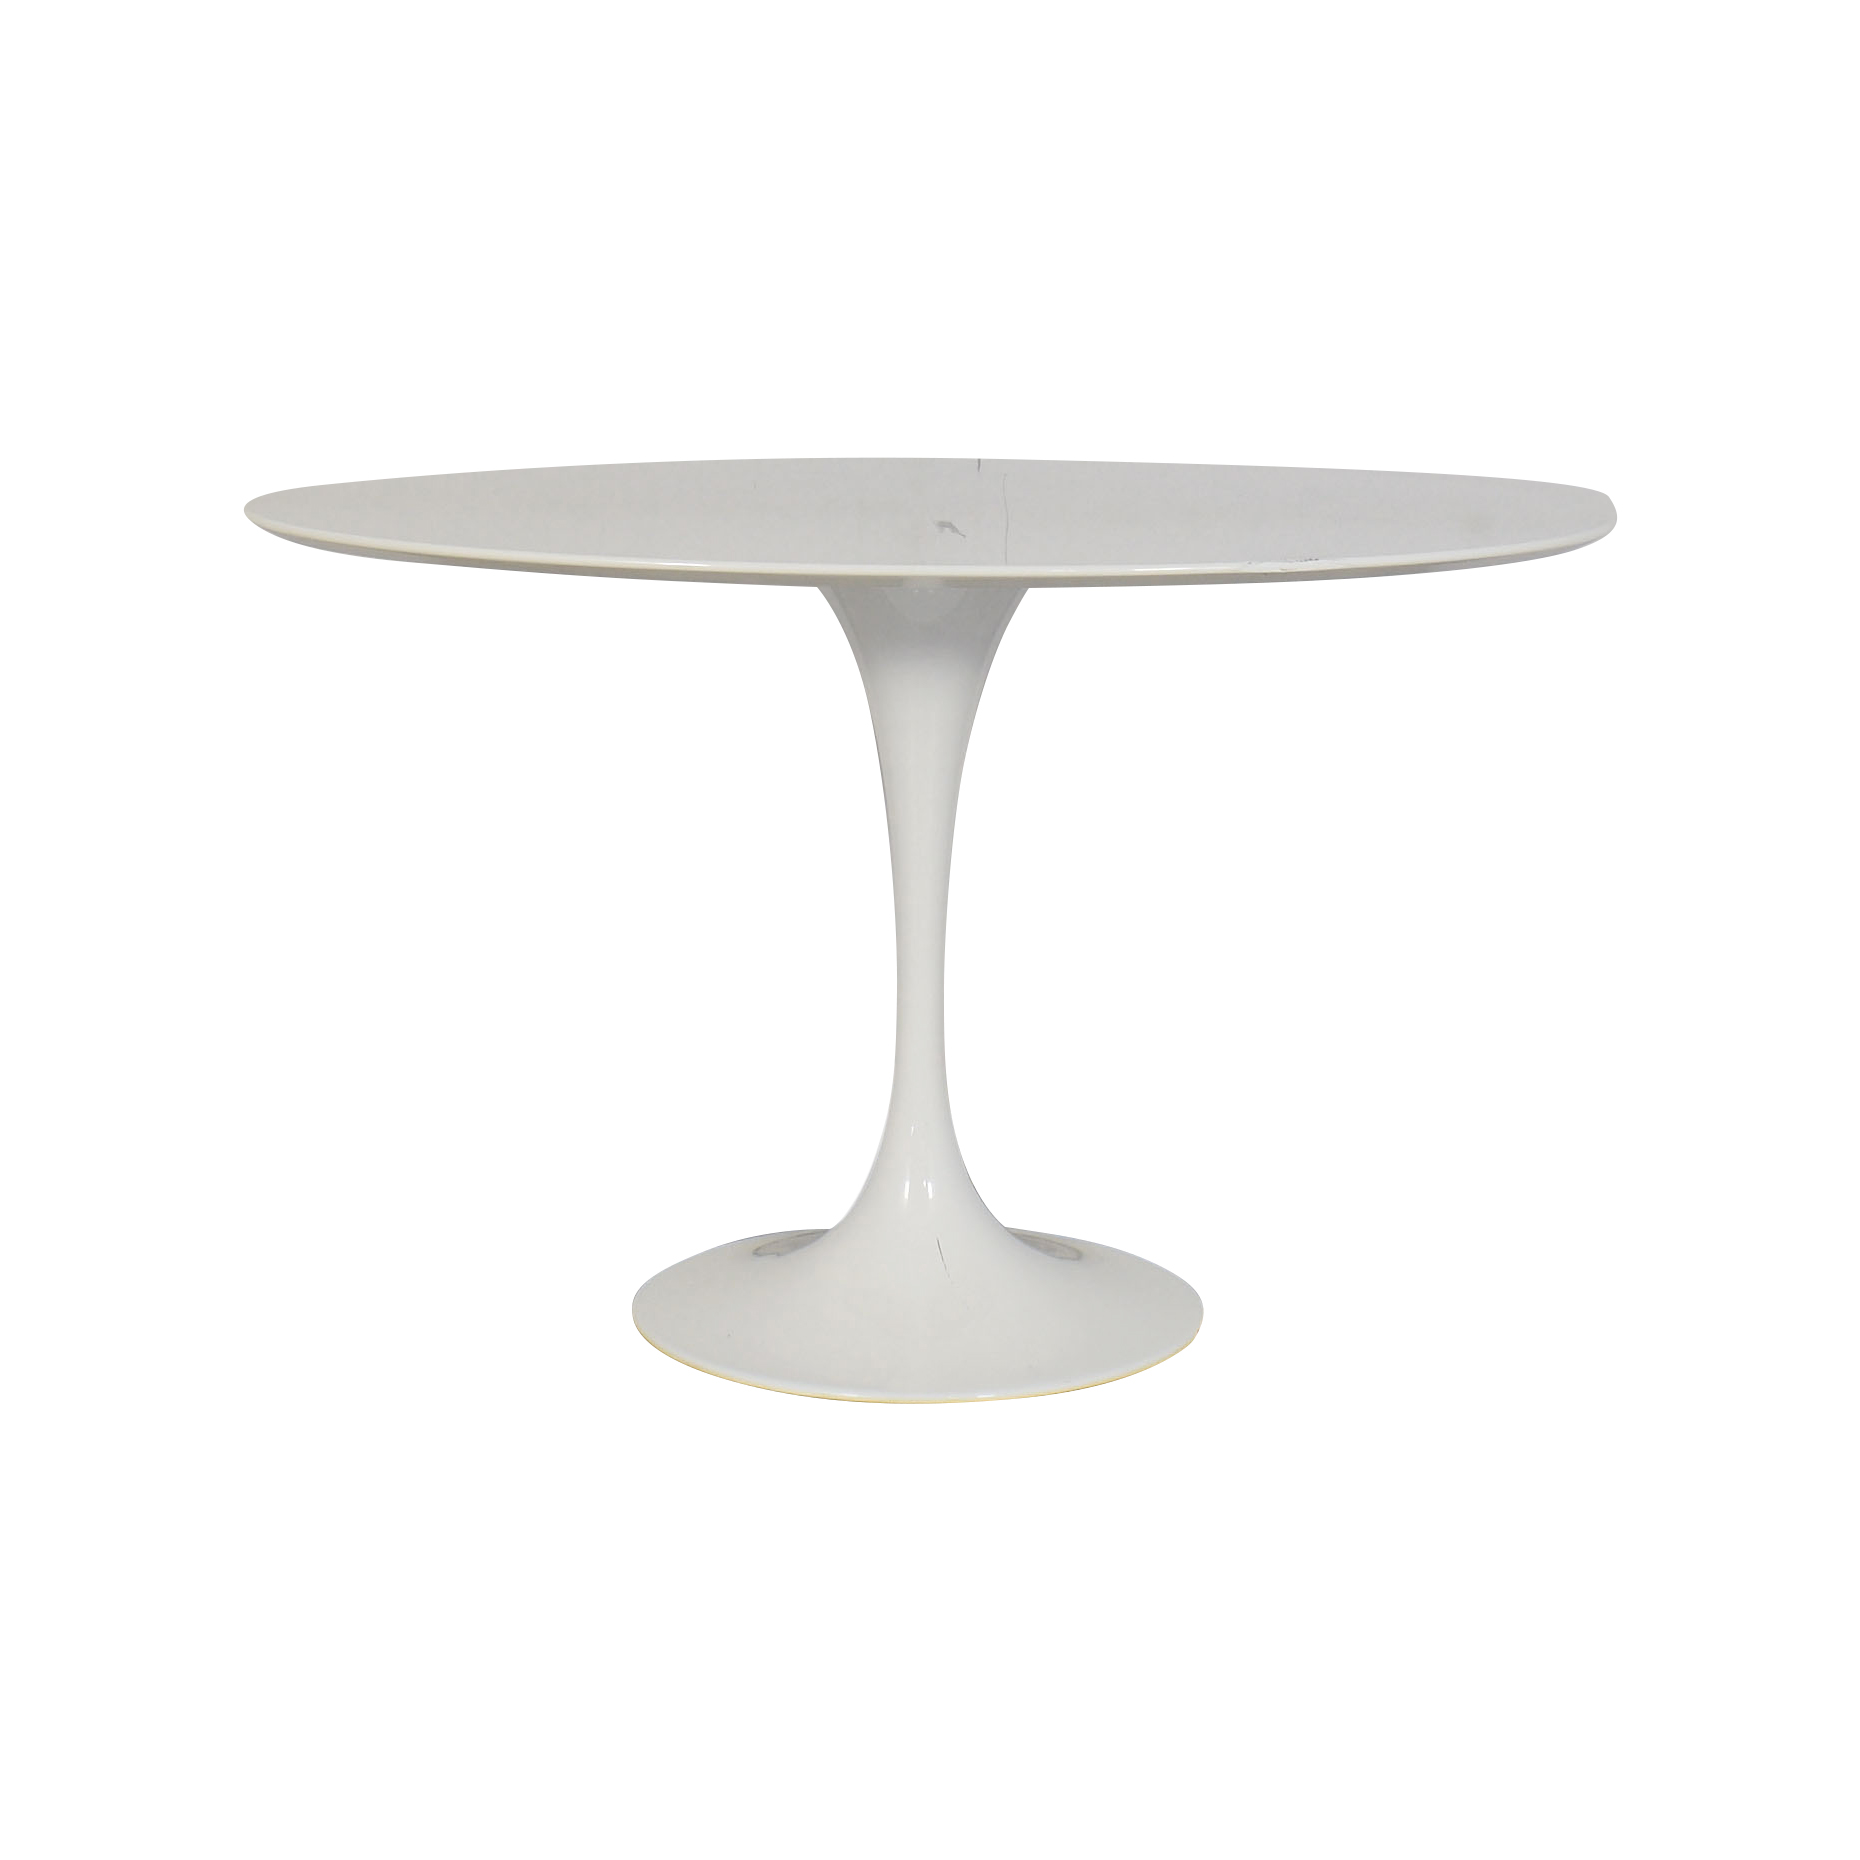 LexMod LexMod Lippa Oval Dining Table white